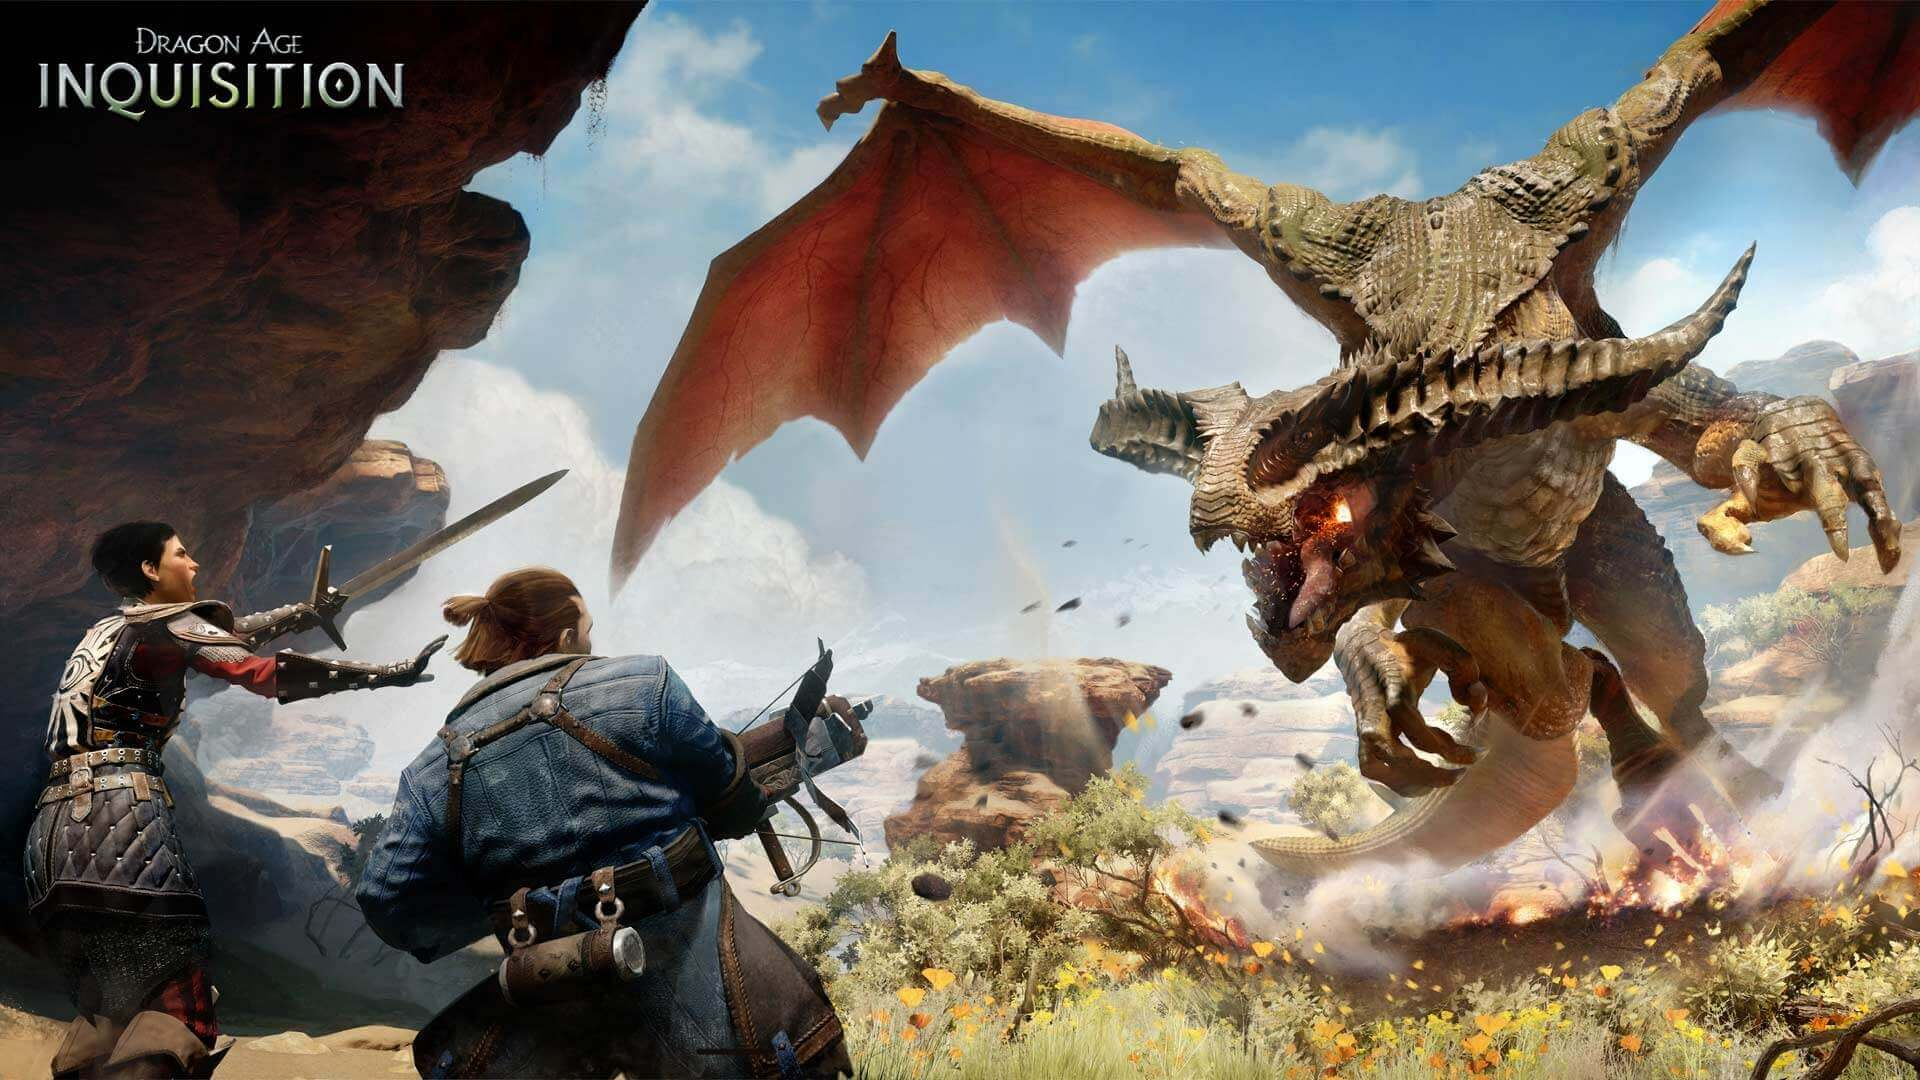 Dragon Age Inquisition- Jaws of Hakkon Released